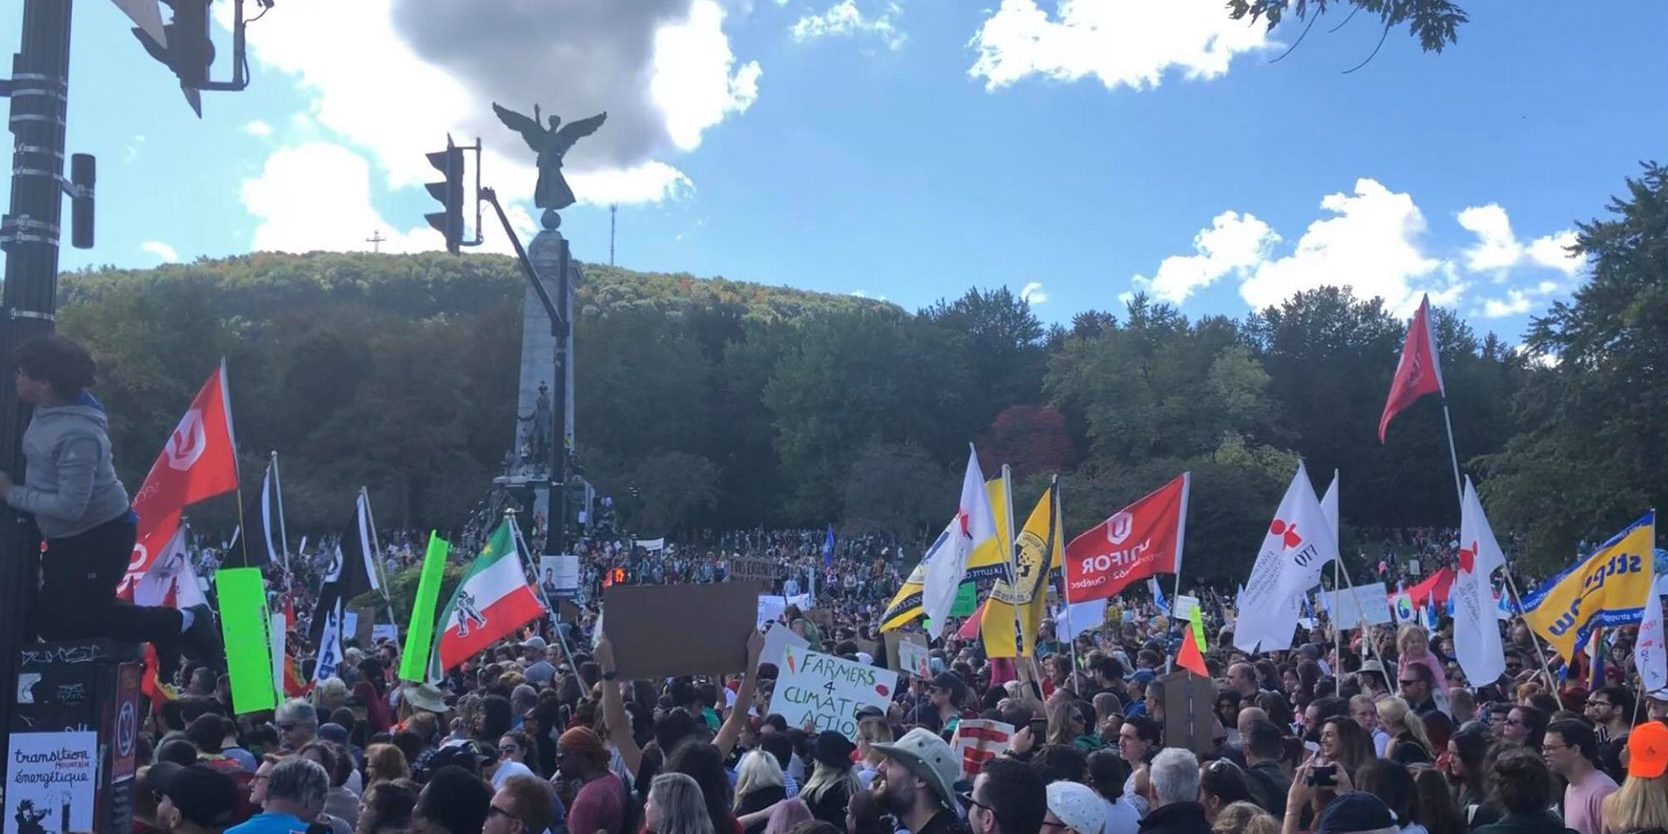 Here's what's happening at the Montreal climate protests right now